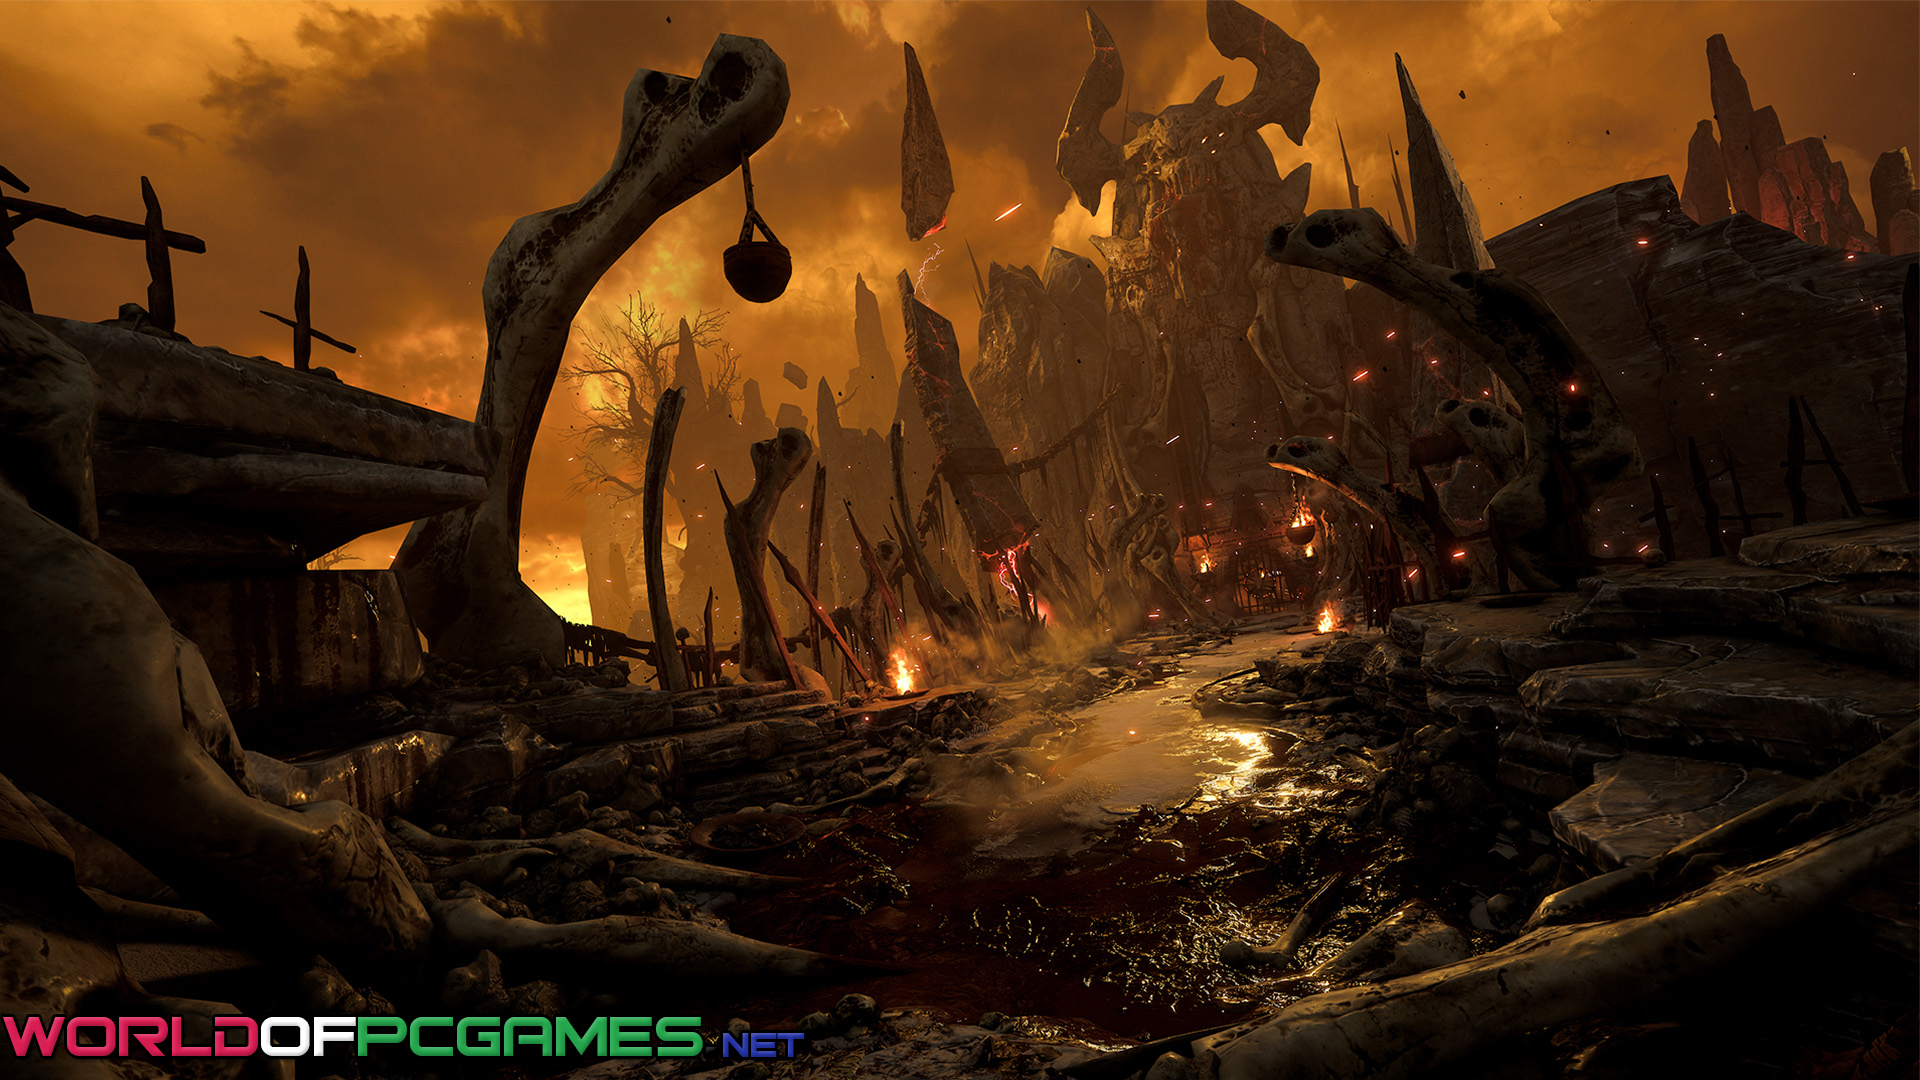 Doom Free Download By Worldofpcgames.net